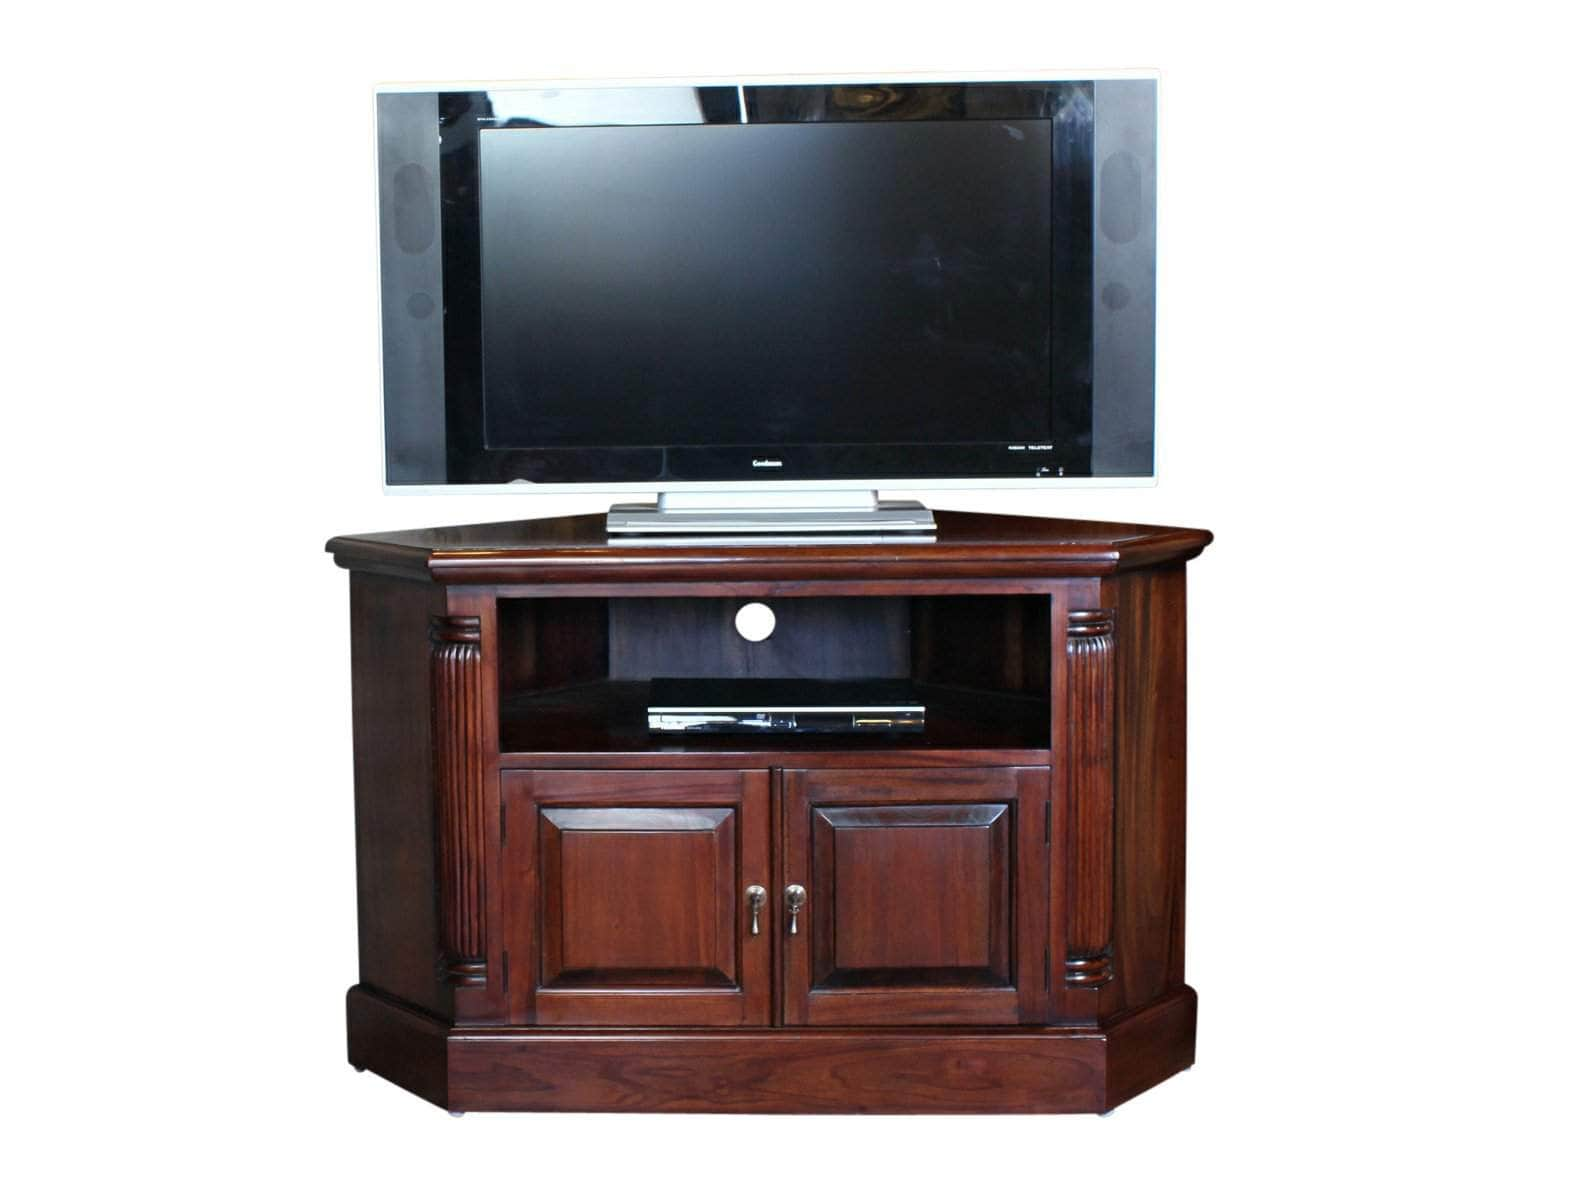 Mahogany corner TV stand, with media shelf and storage cupboard behind double doors